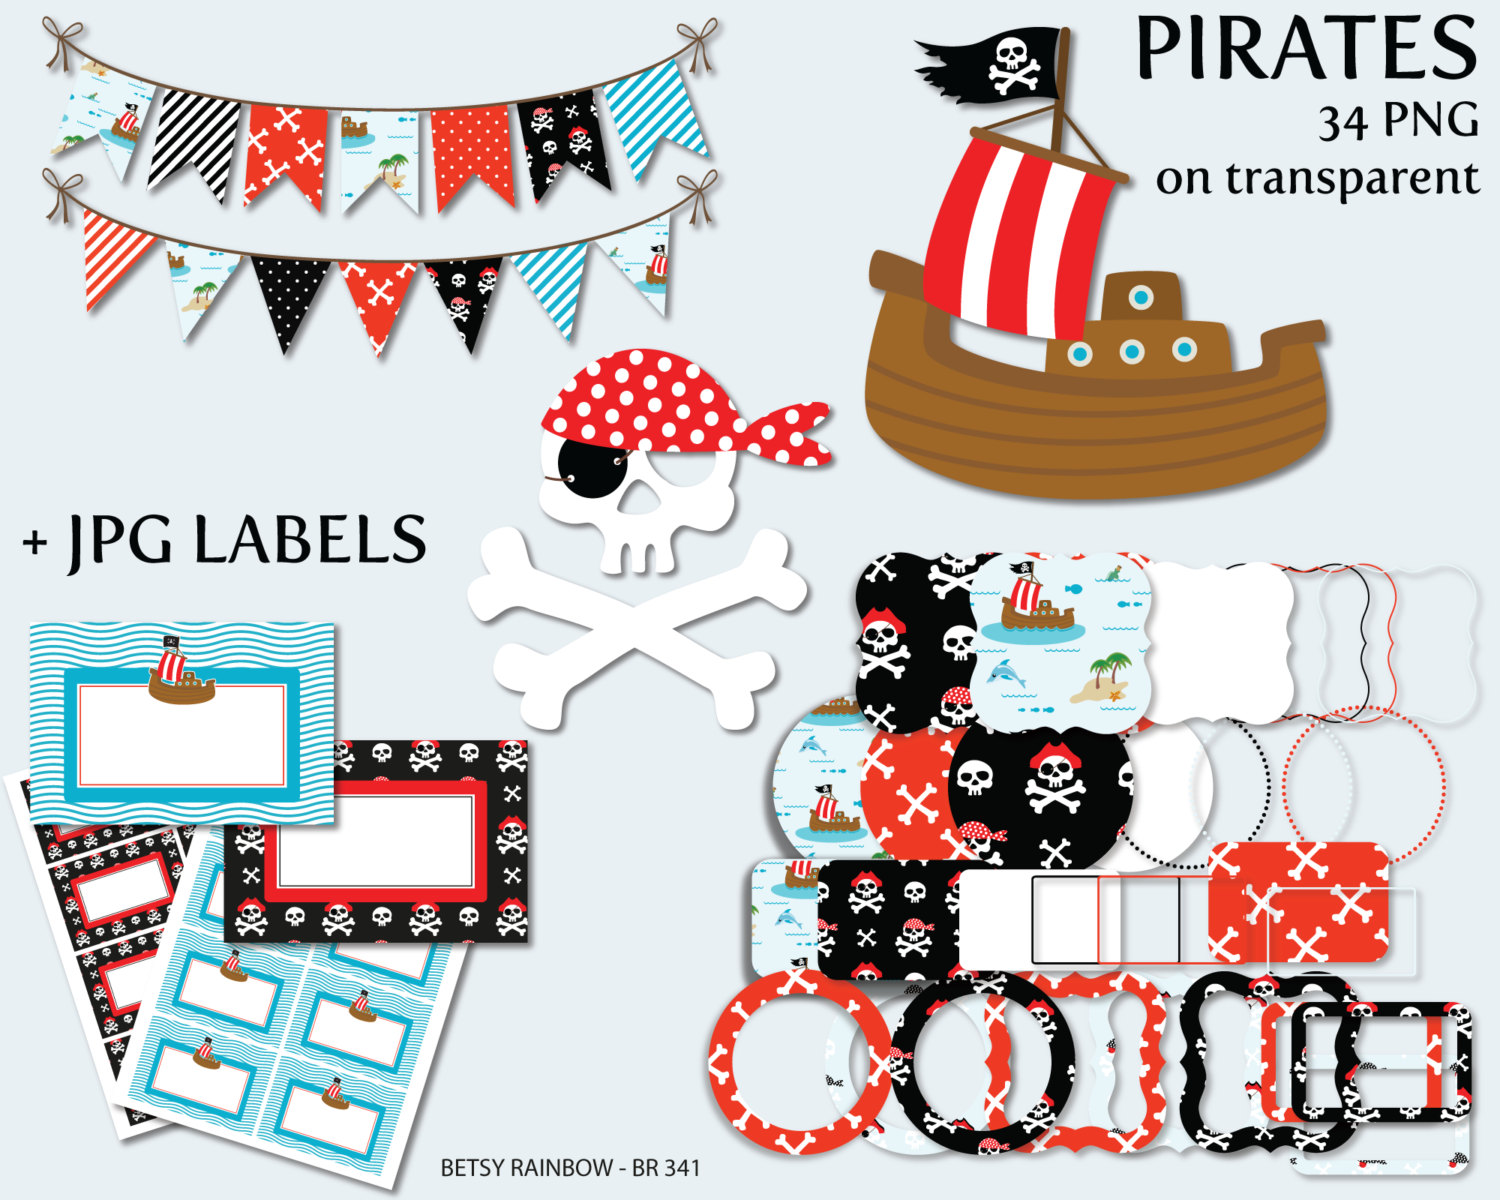 Free frame cliparts download. Pirate clipart banner